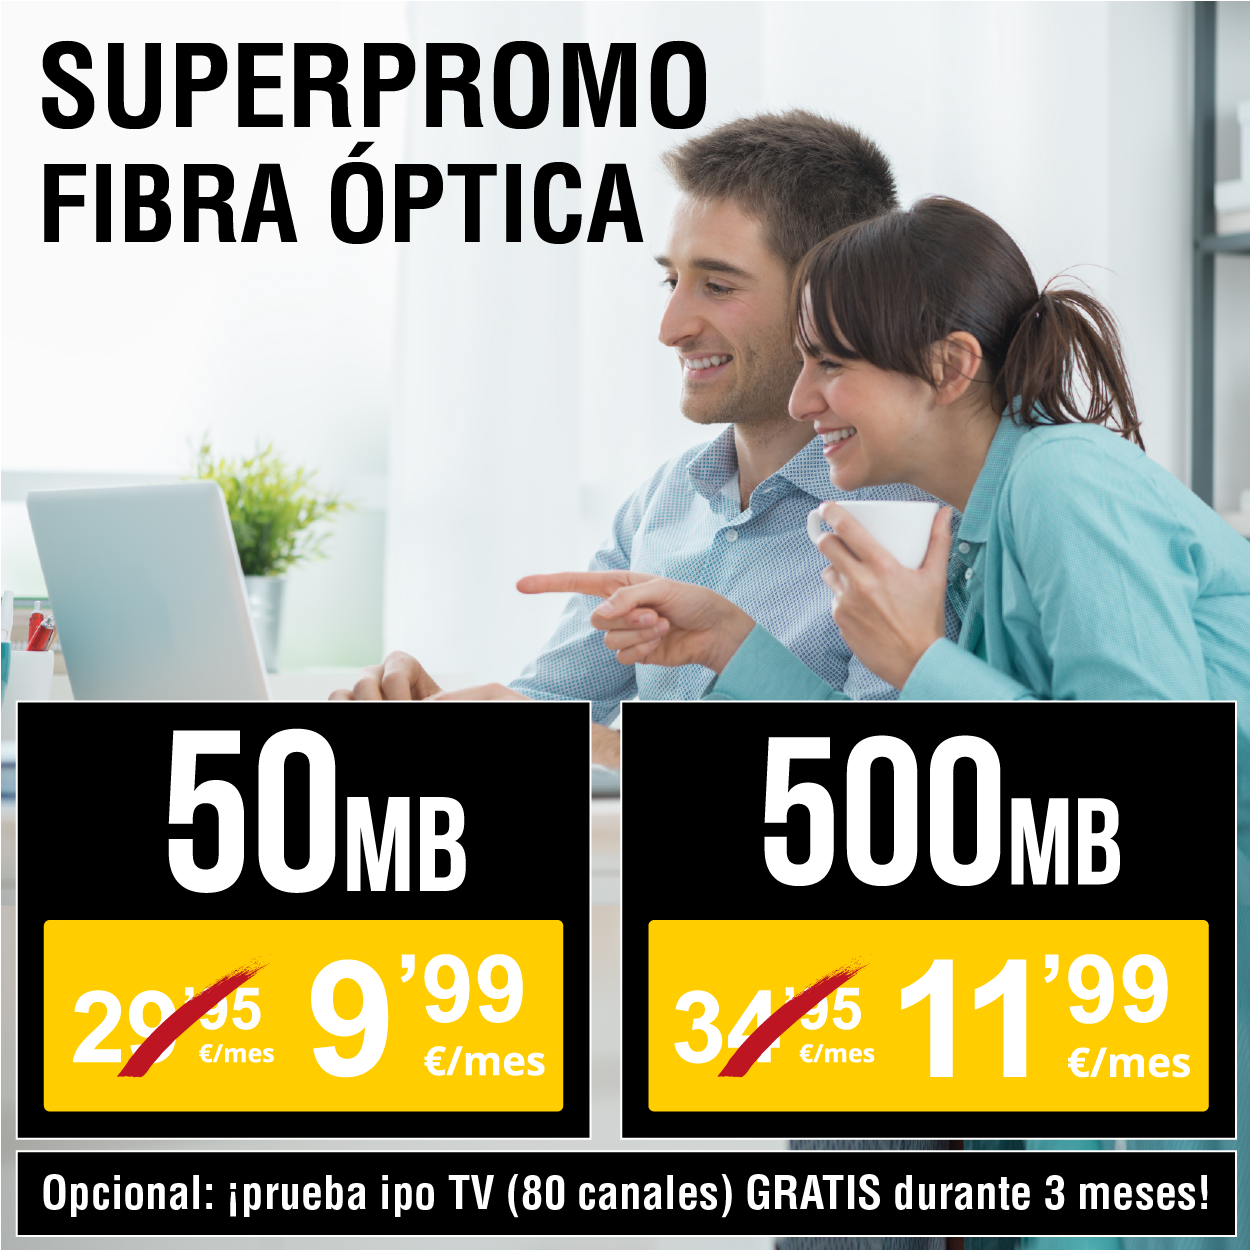 superpromo fibra optica en ipo